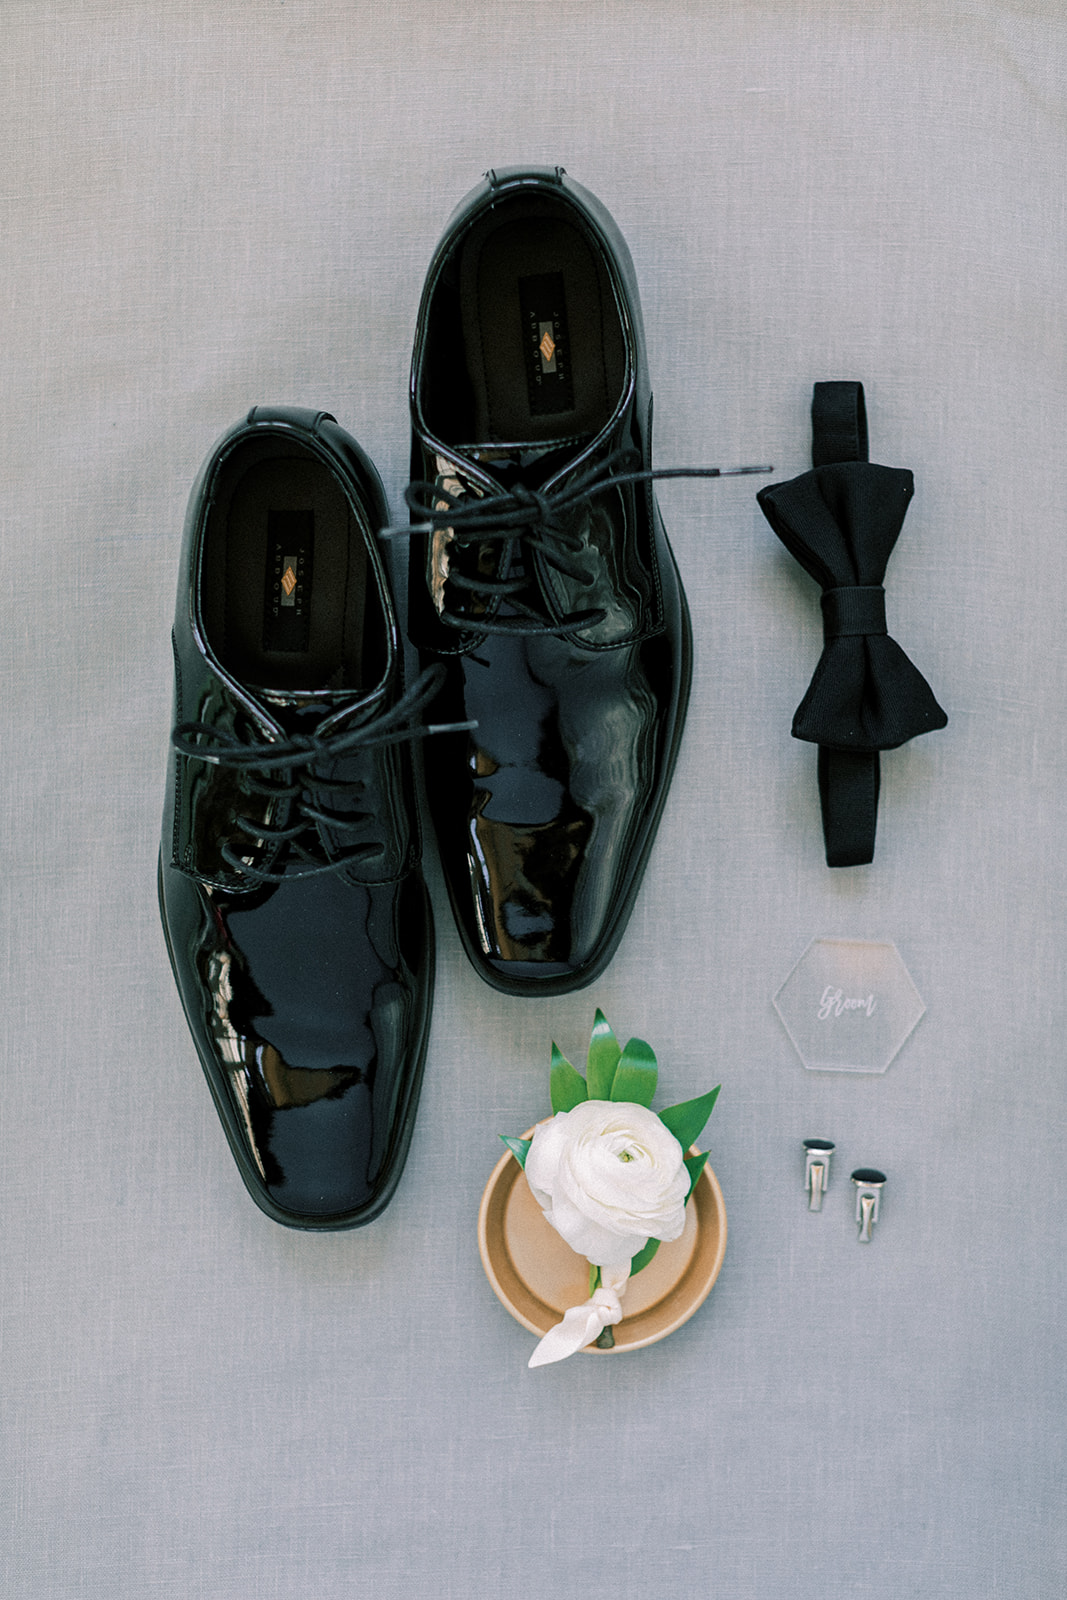 Groom's shoes and black bow tie